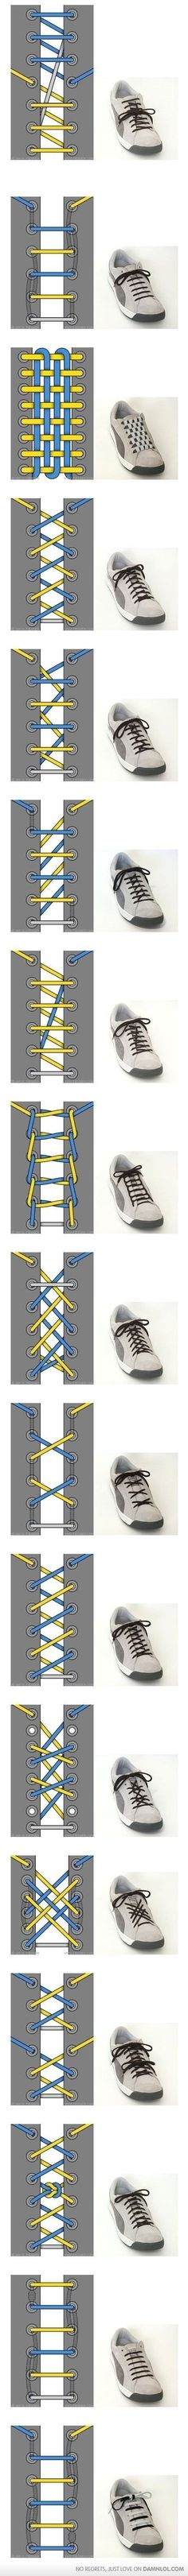 Cool Ways to Tie Your Shoes by Ian's Shoelace Site http://tinyurl.com/7xaxa via damnlol #ShoeLace_Tying #Ians_Shoelace_Site #damnlol